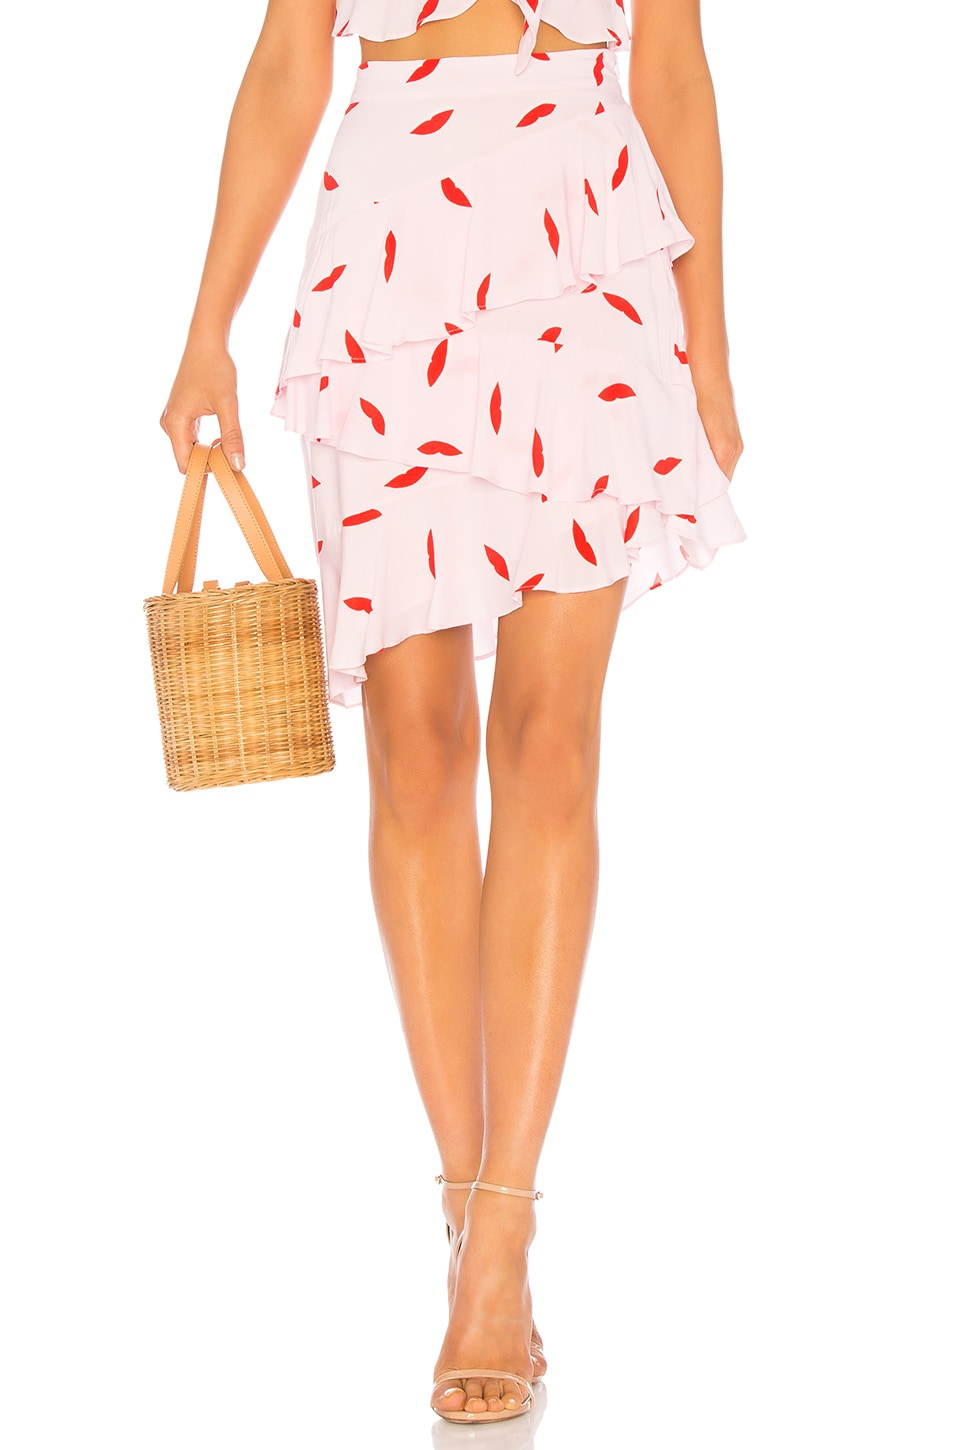 LPA Asymmetric Ruffle Skirt in Lips